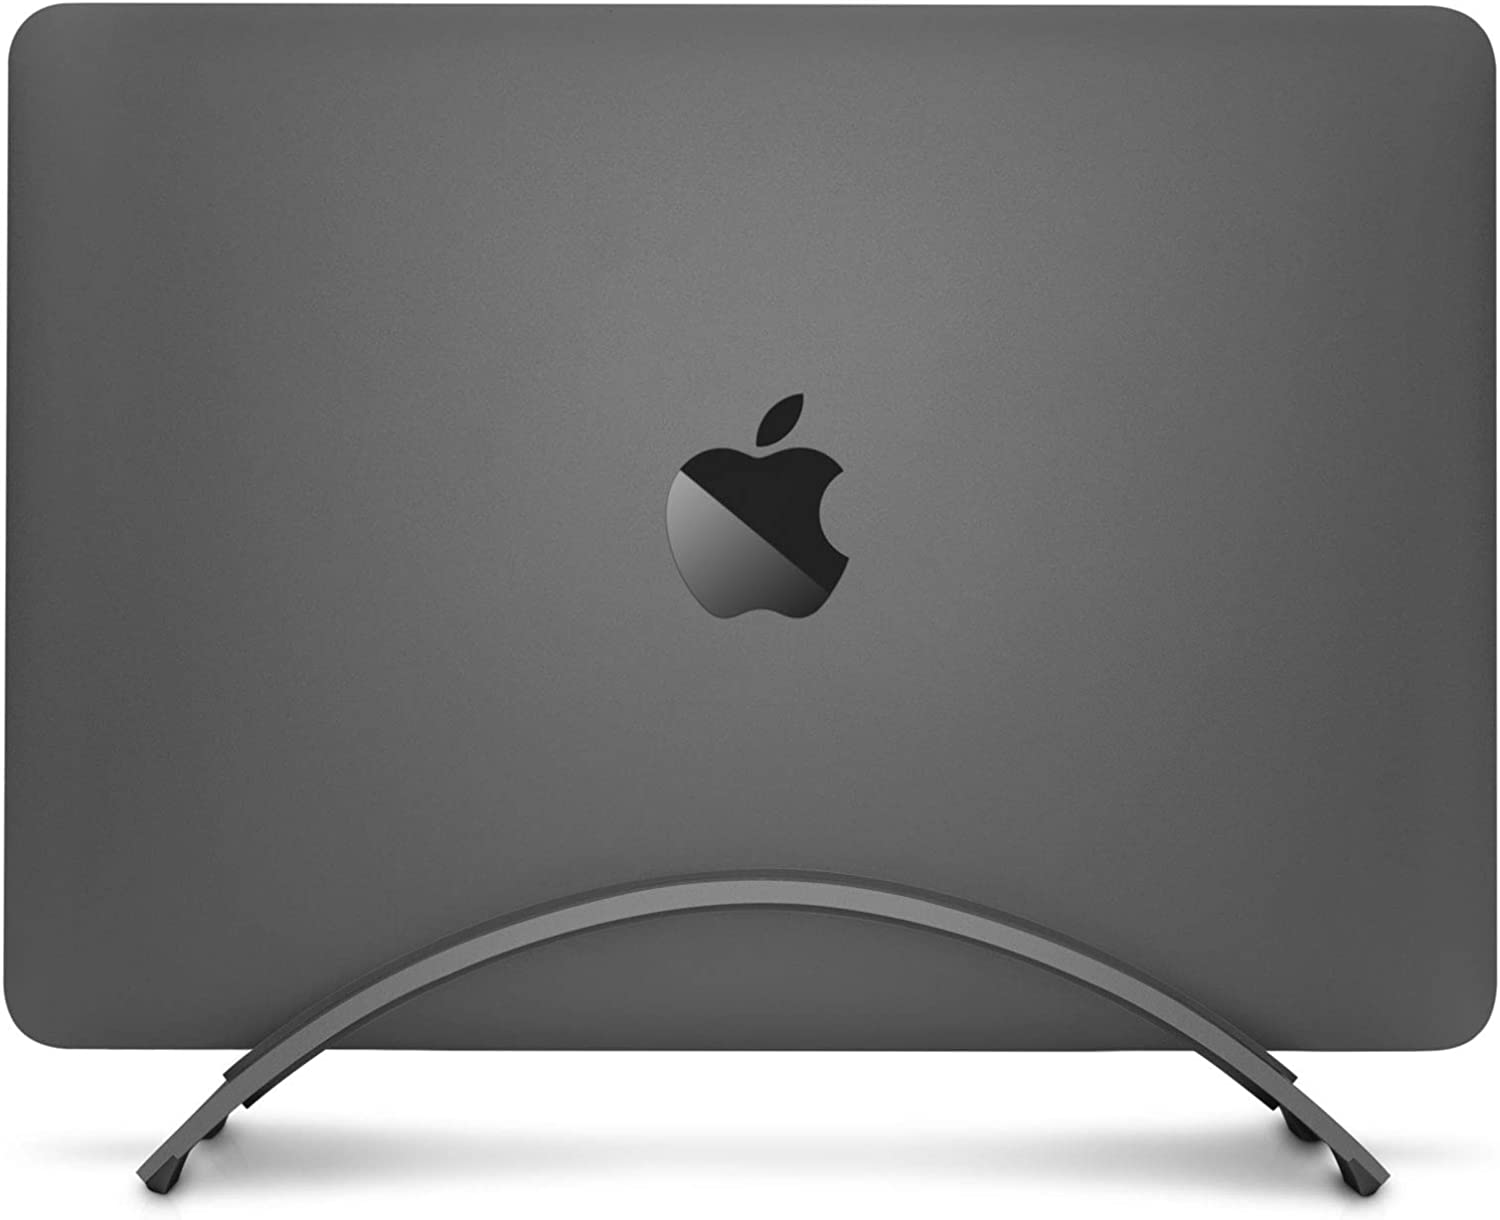 Soporte En Vertical Macbook Twelve South Bookarc SPACE GREY